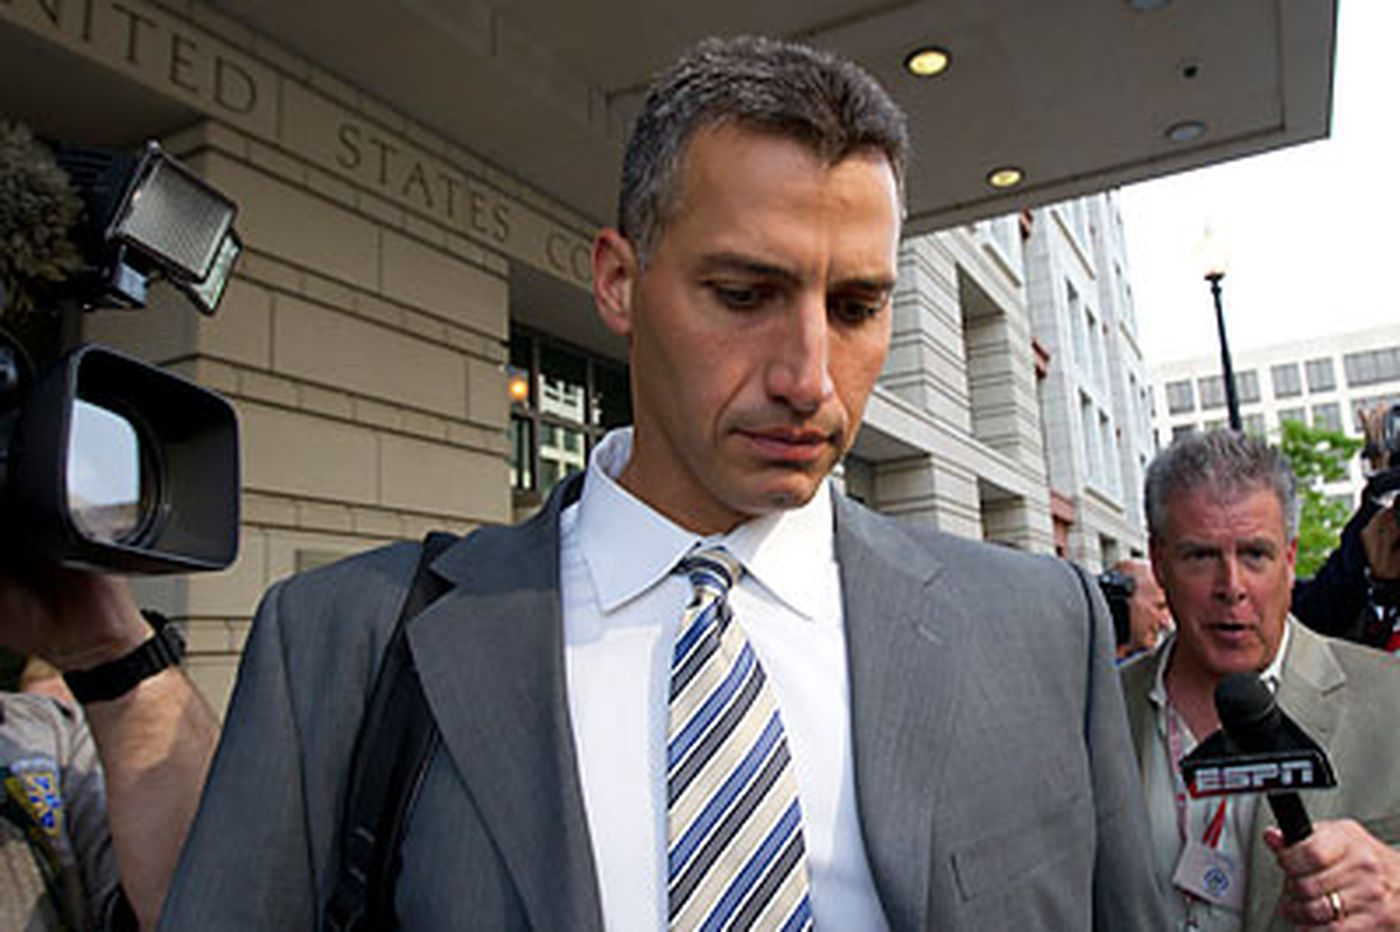 Pettitte testifies Clemens told him of HGH